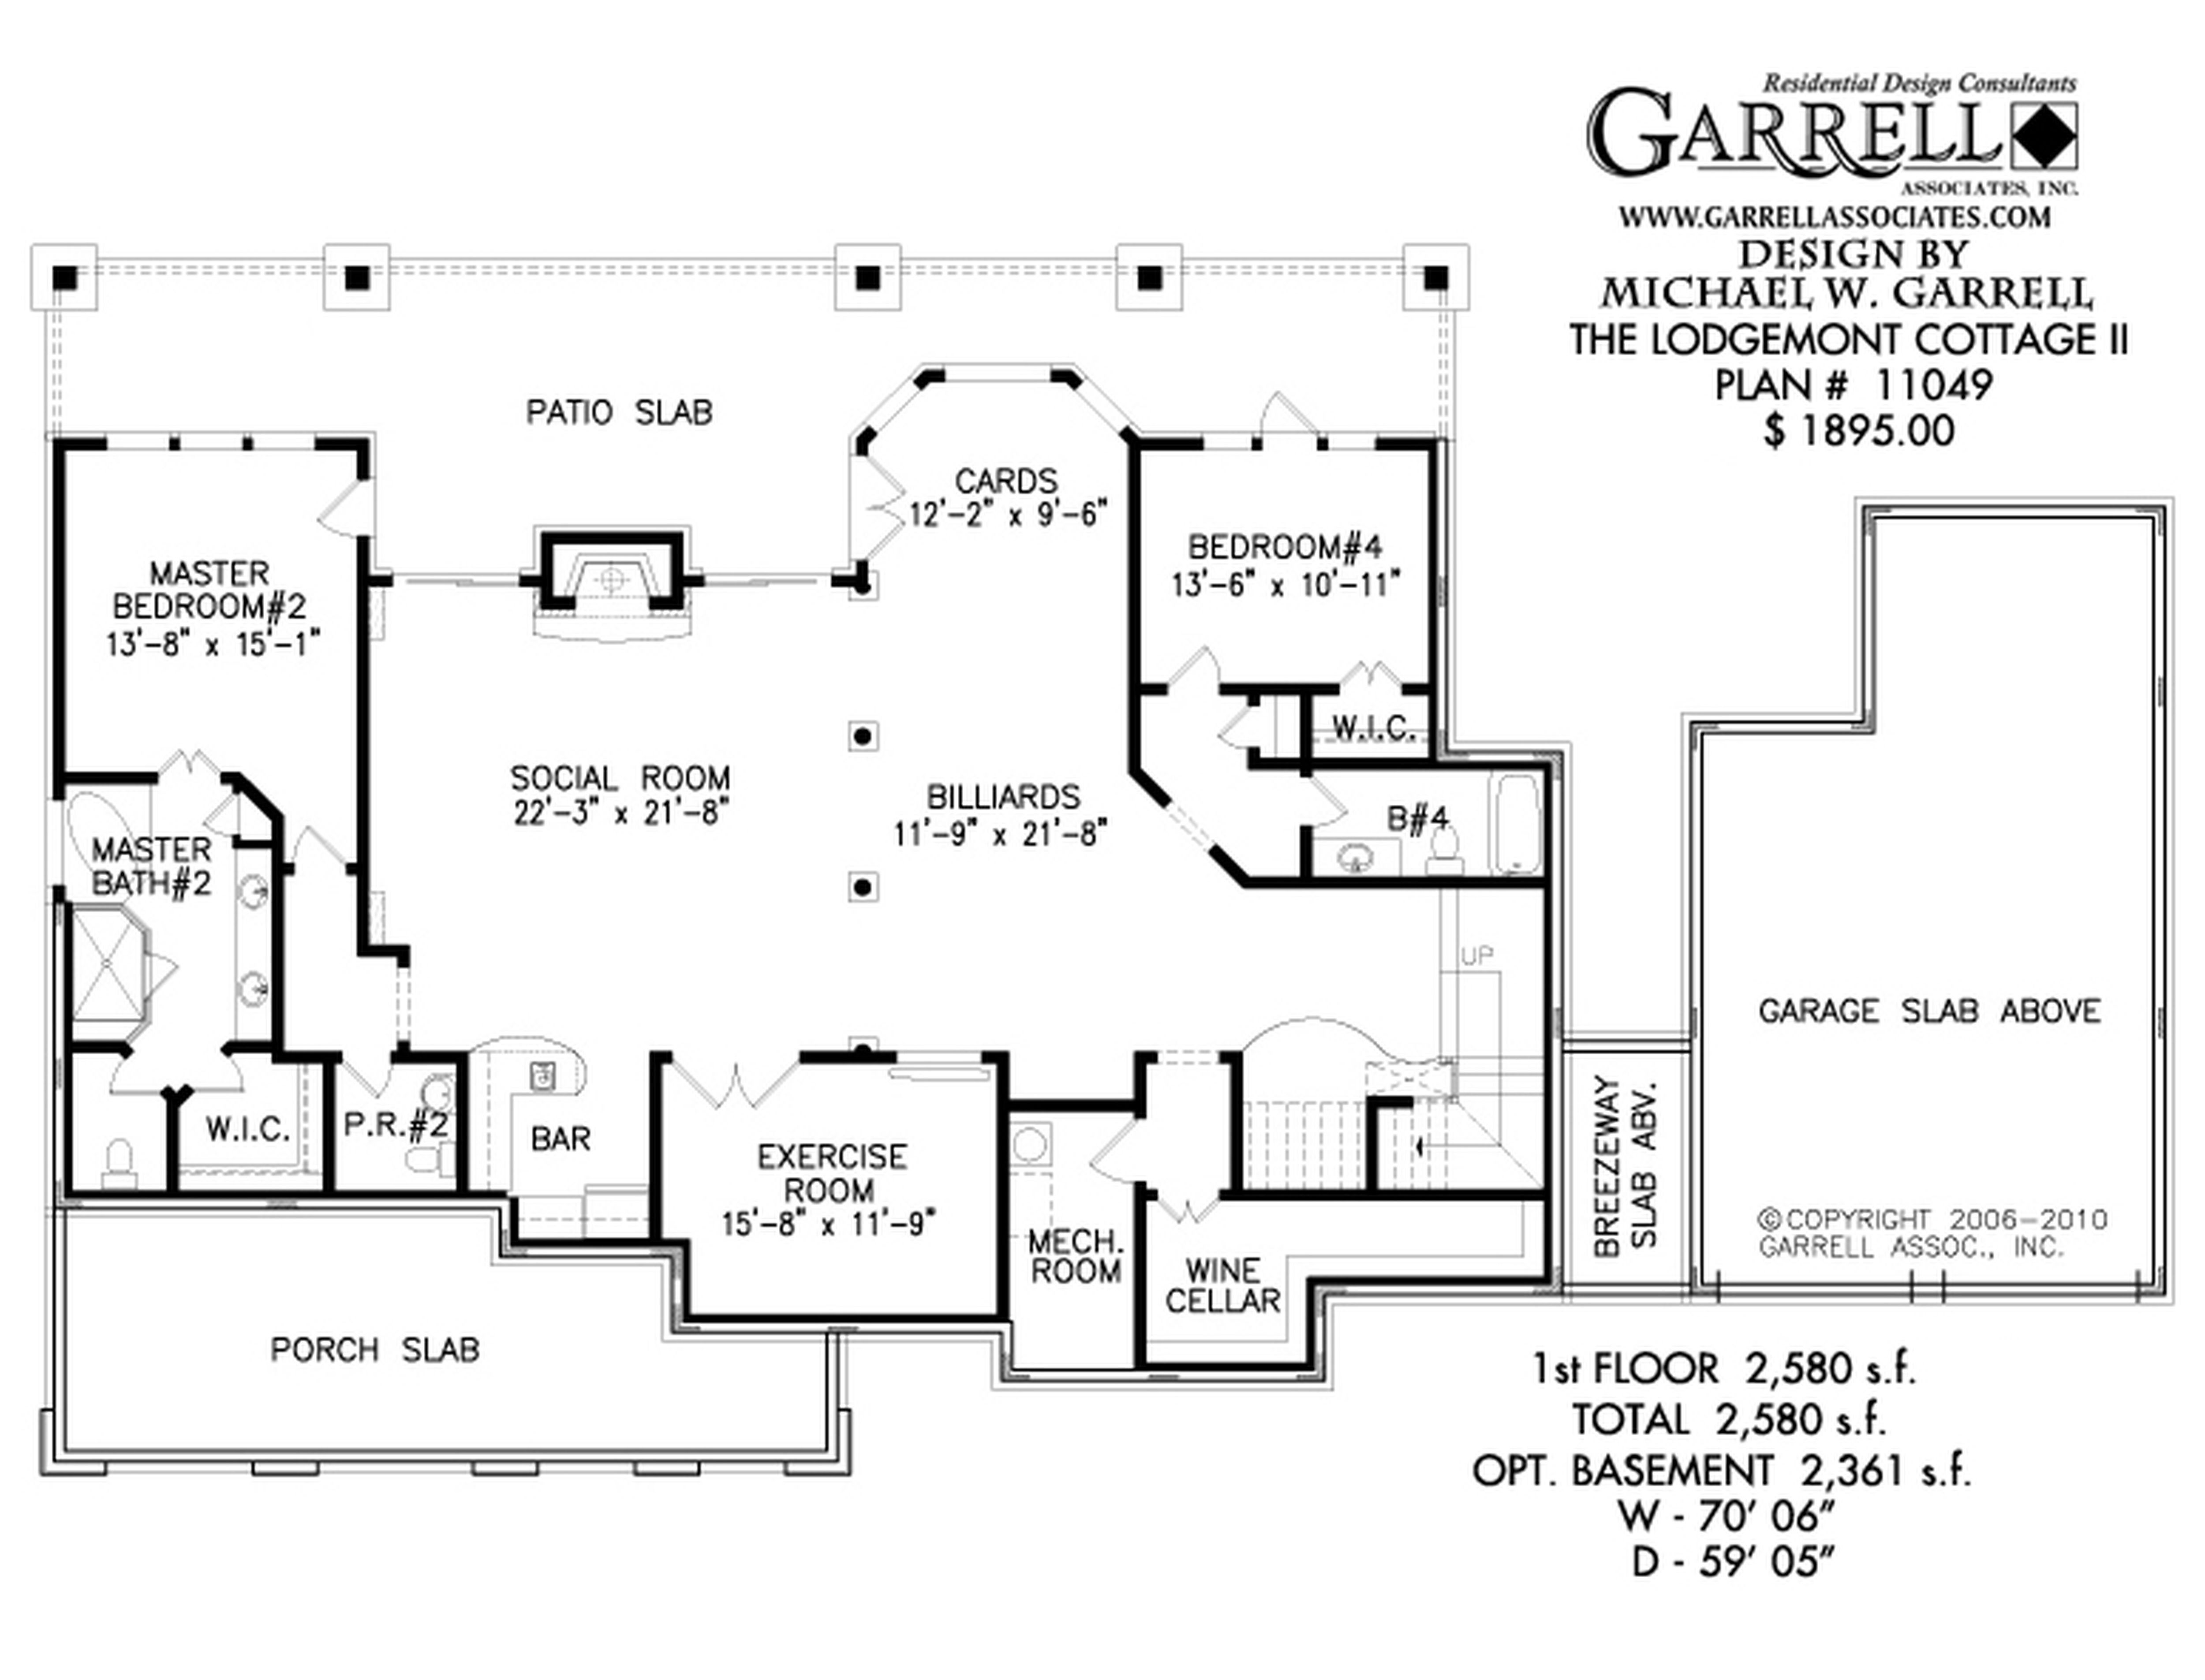 Basement Floor Plan Layout Finished Basement Floor Plans Finished From Basement Floor Plans For Ranch Style Homes